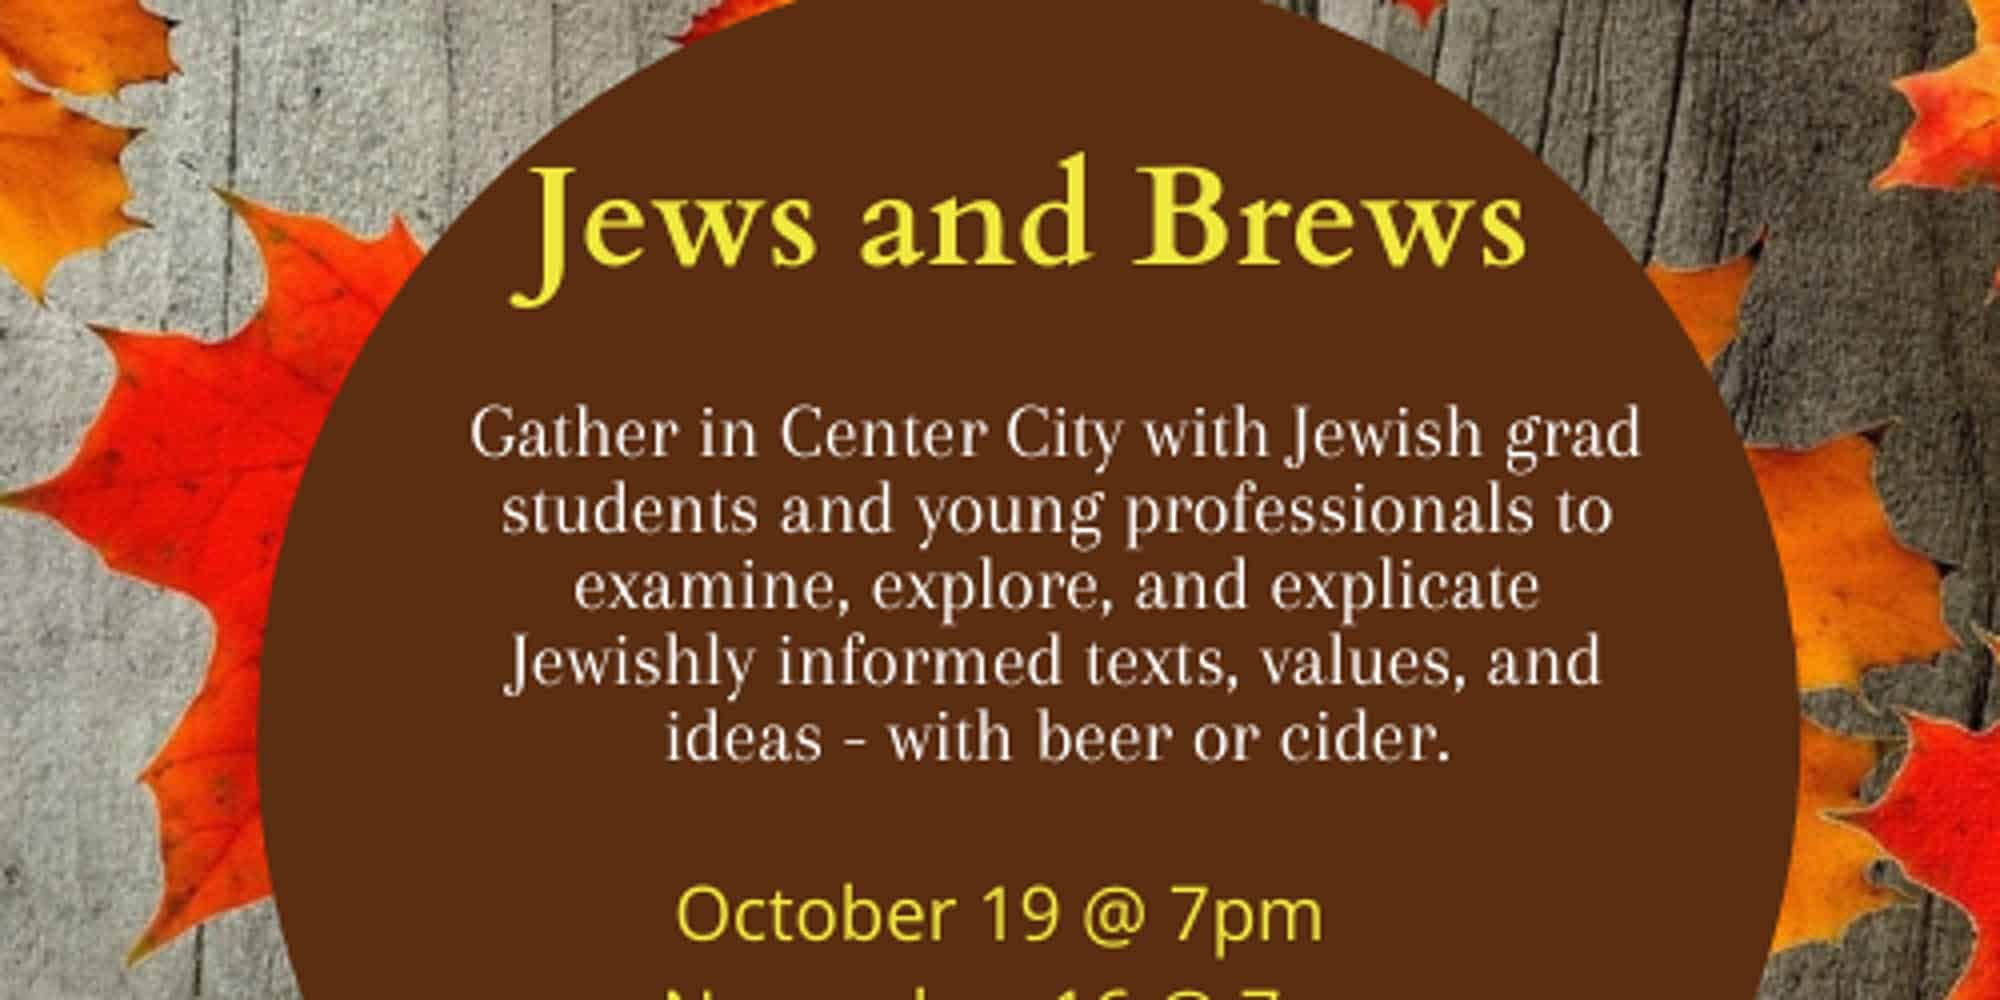 Jews and Brews: October 19th